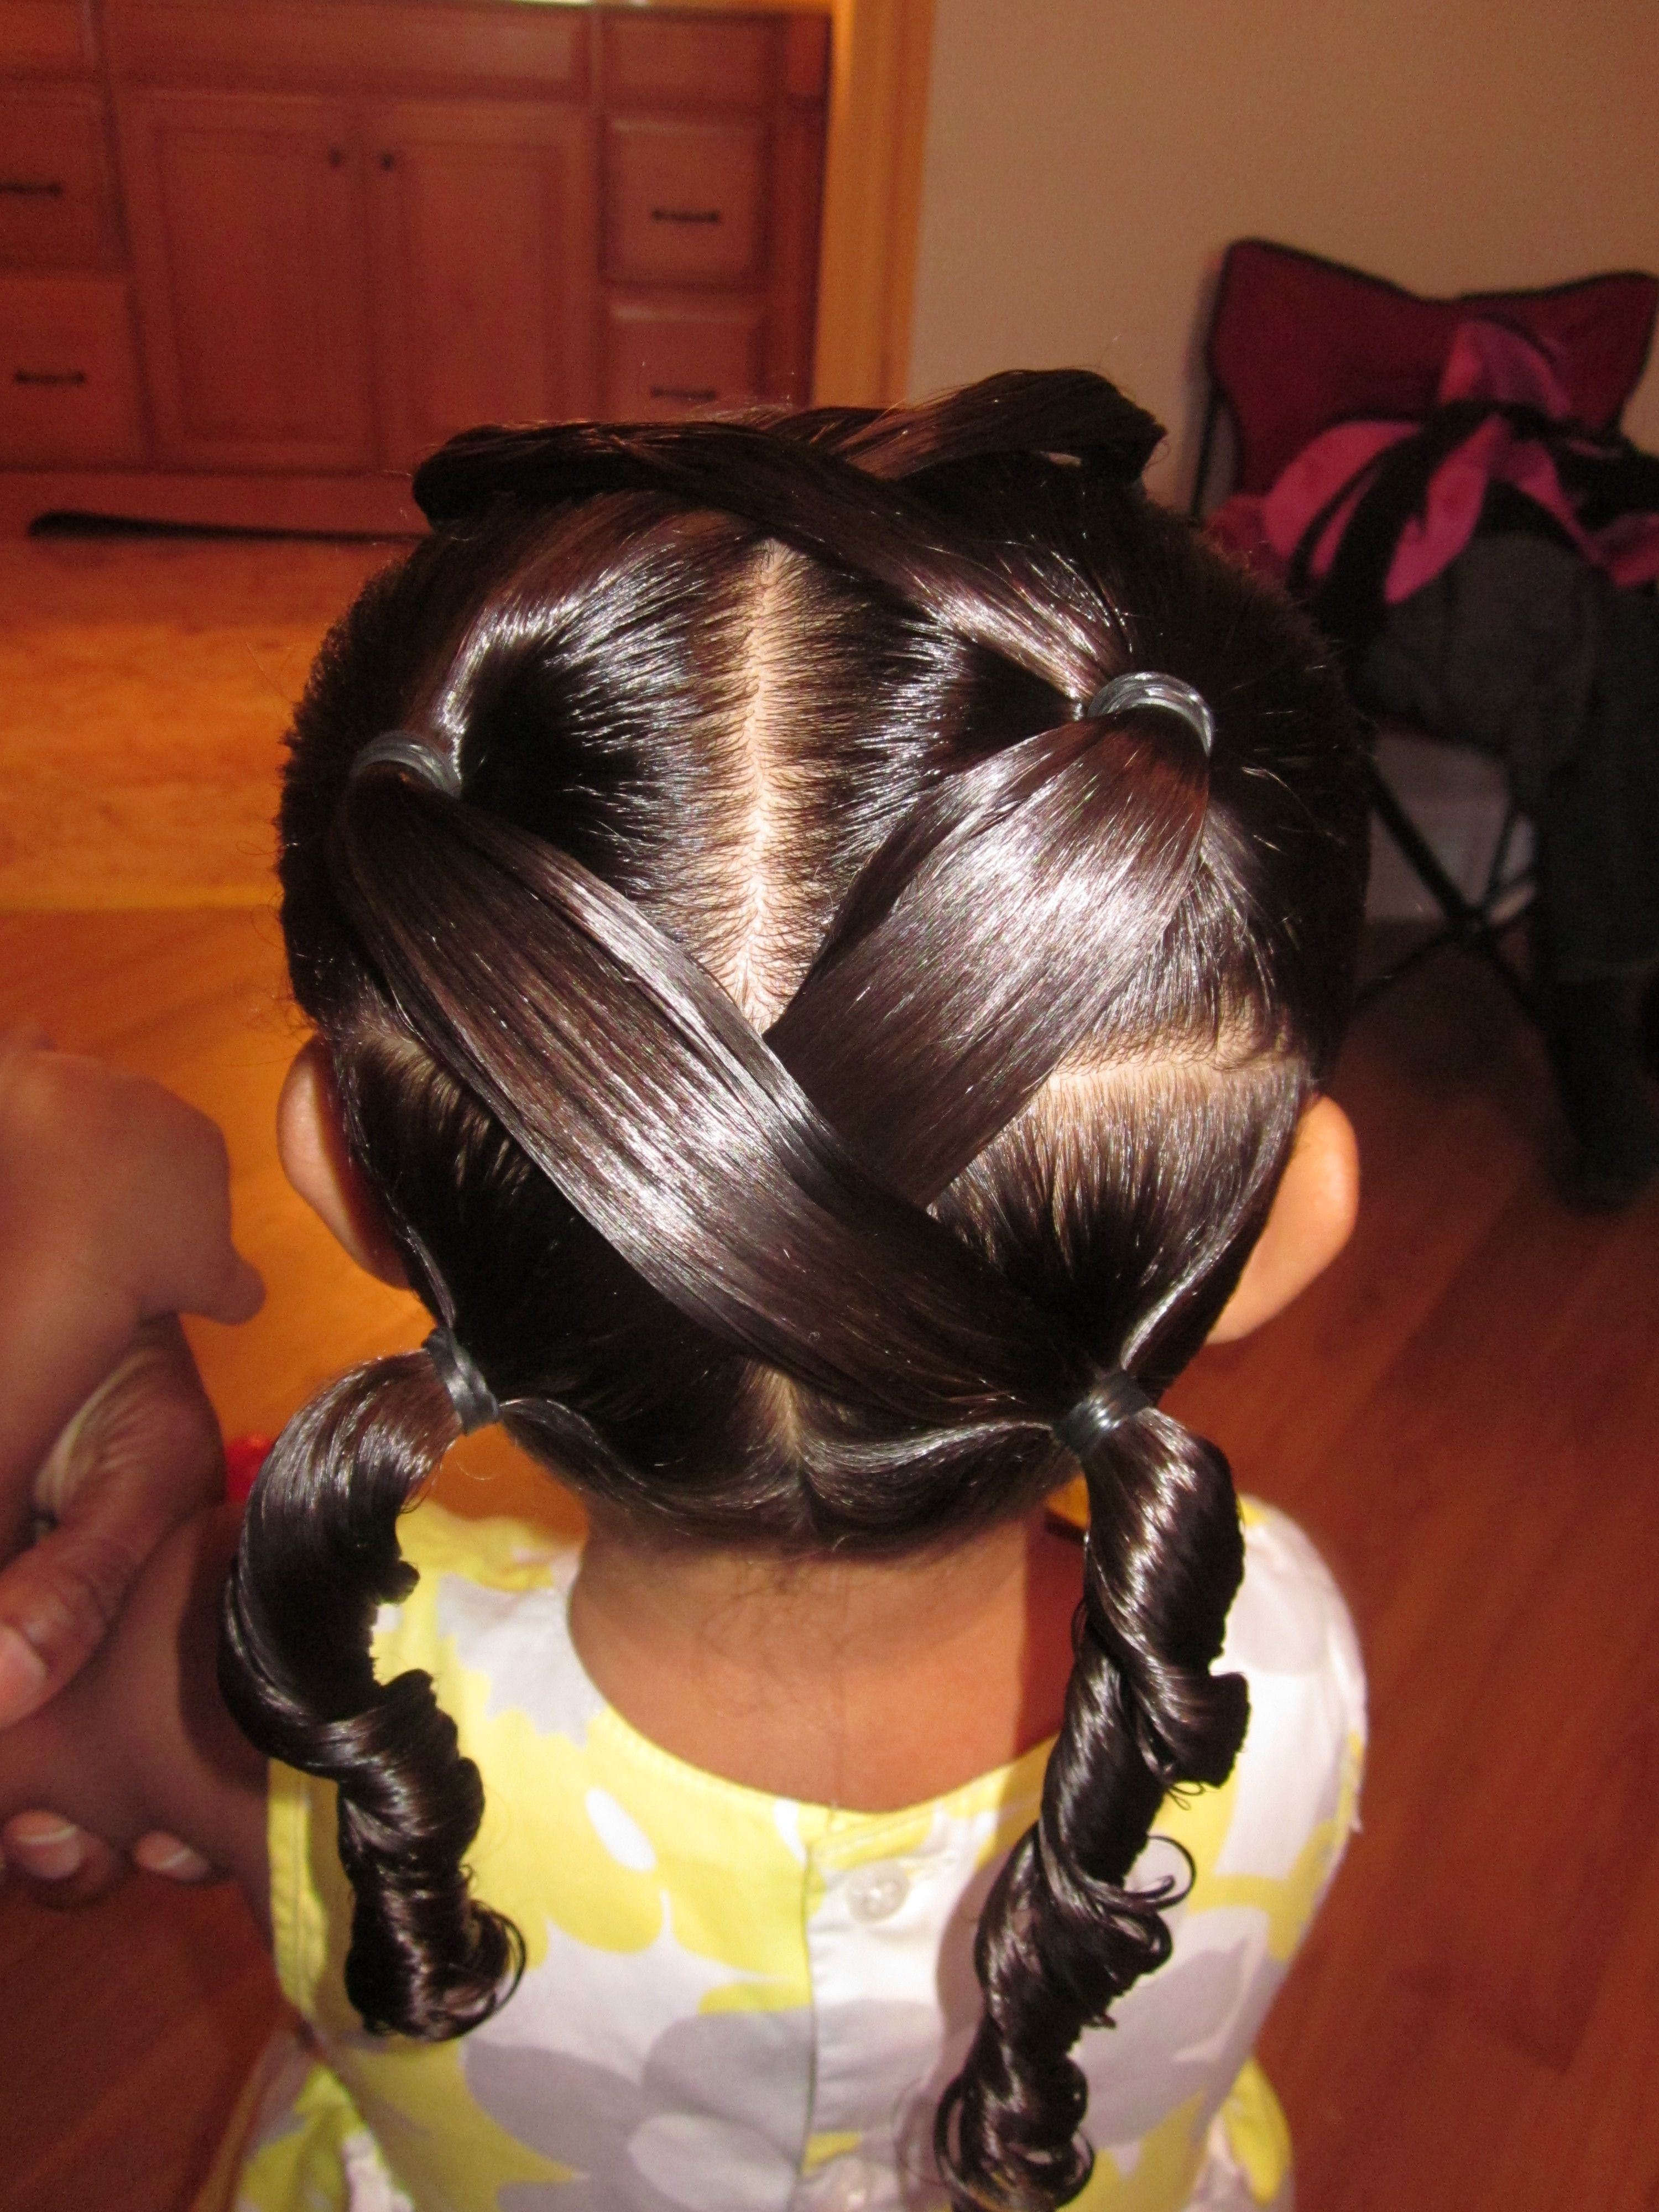 Tried the Hair Style today-turned out really cute!!!